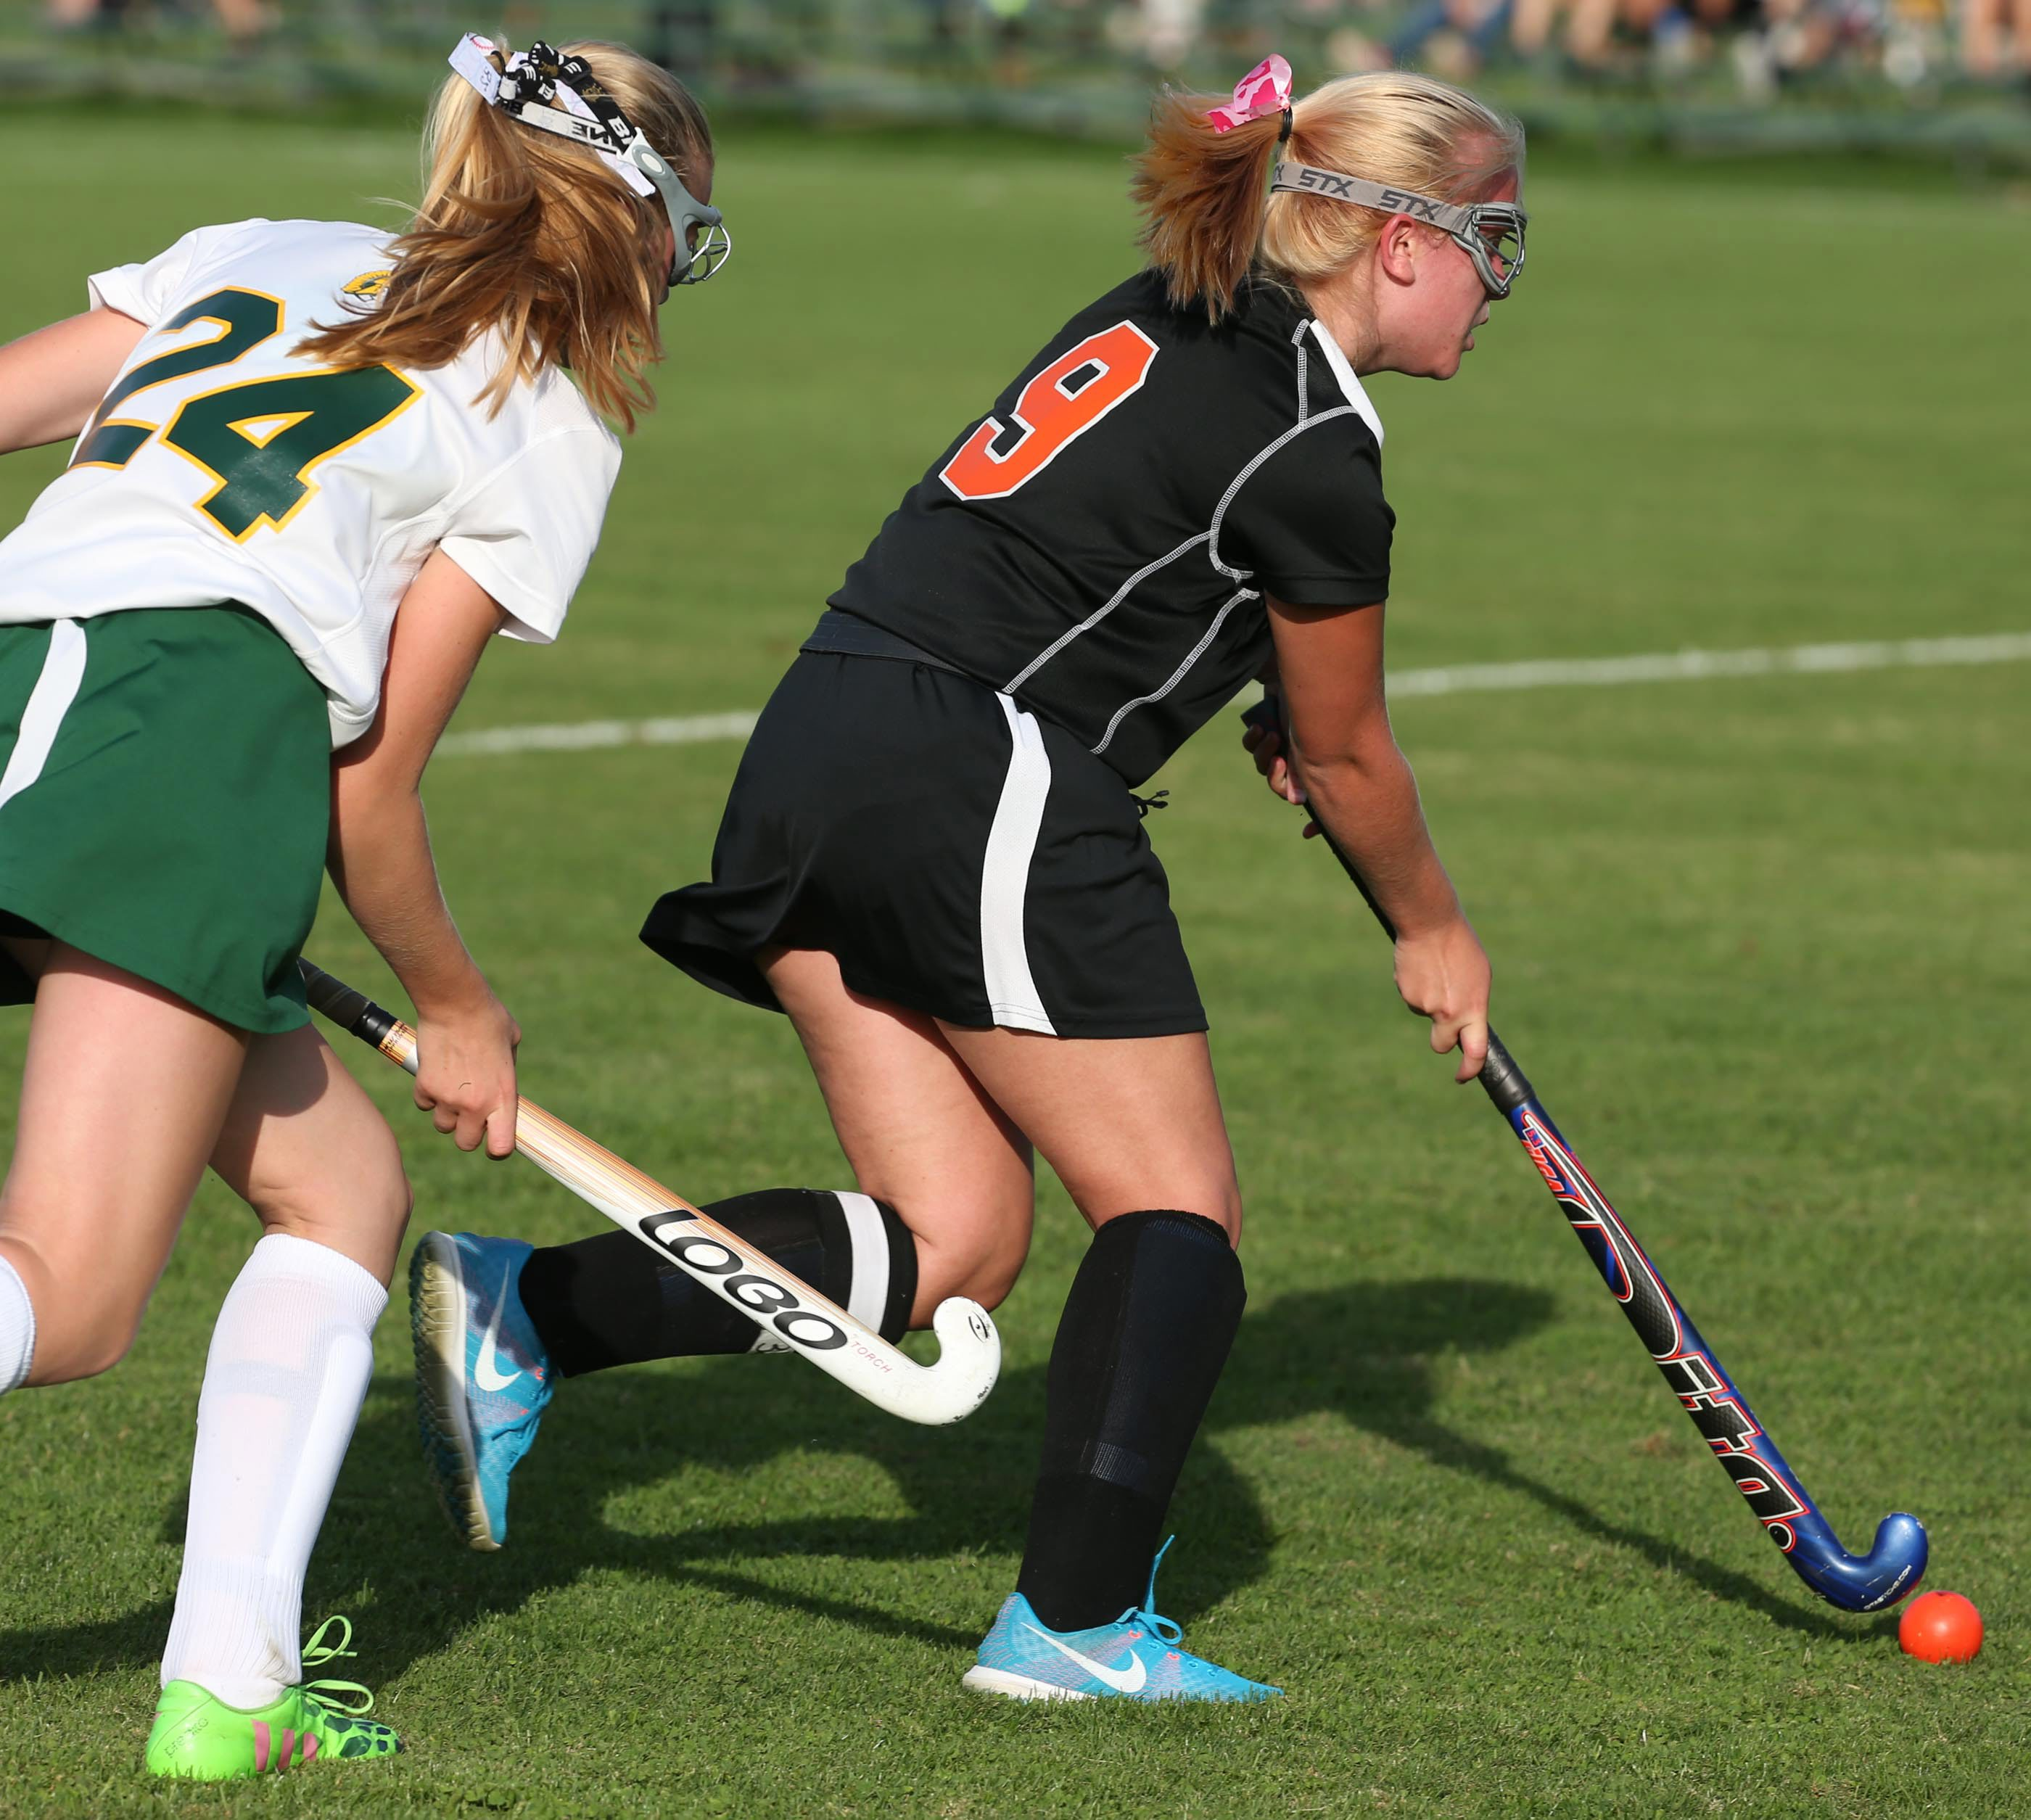 Erin Roland, left, is back for Williamsville North while Jenna Sobol returns to lead Amherst. (James P. McCoy/ Buffalo News)